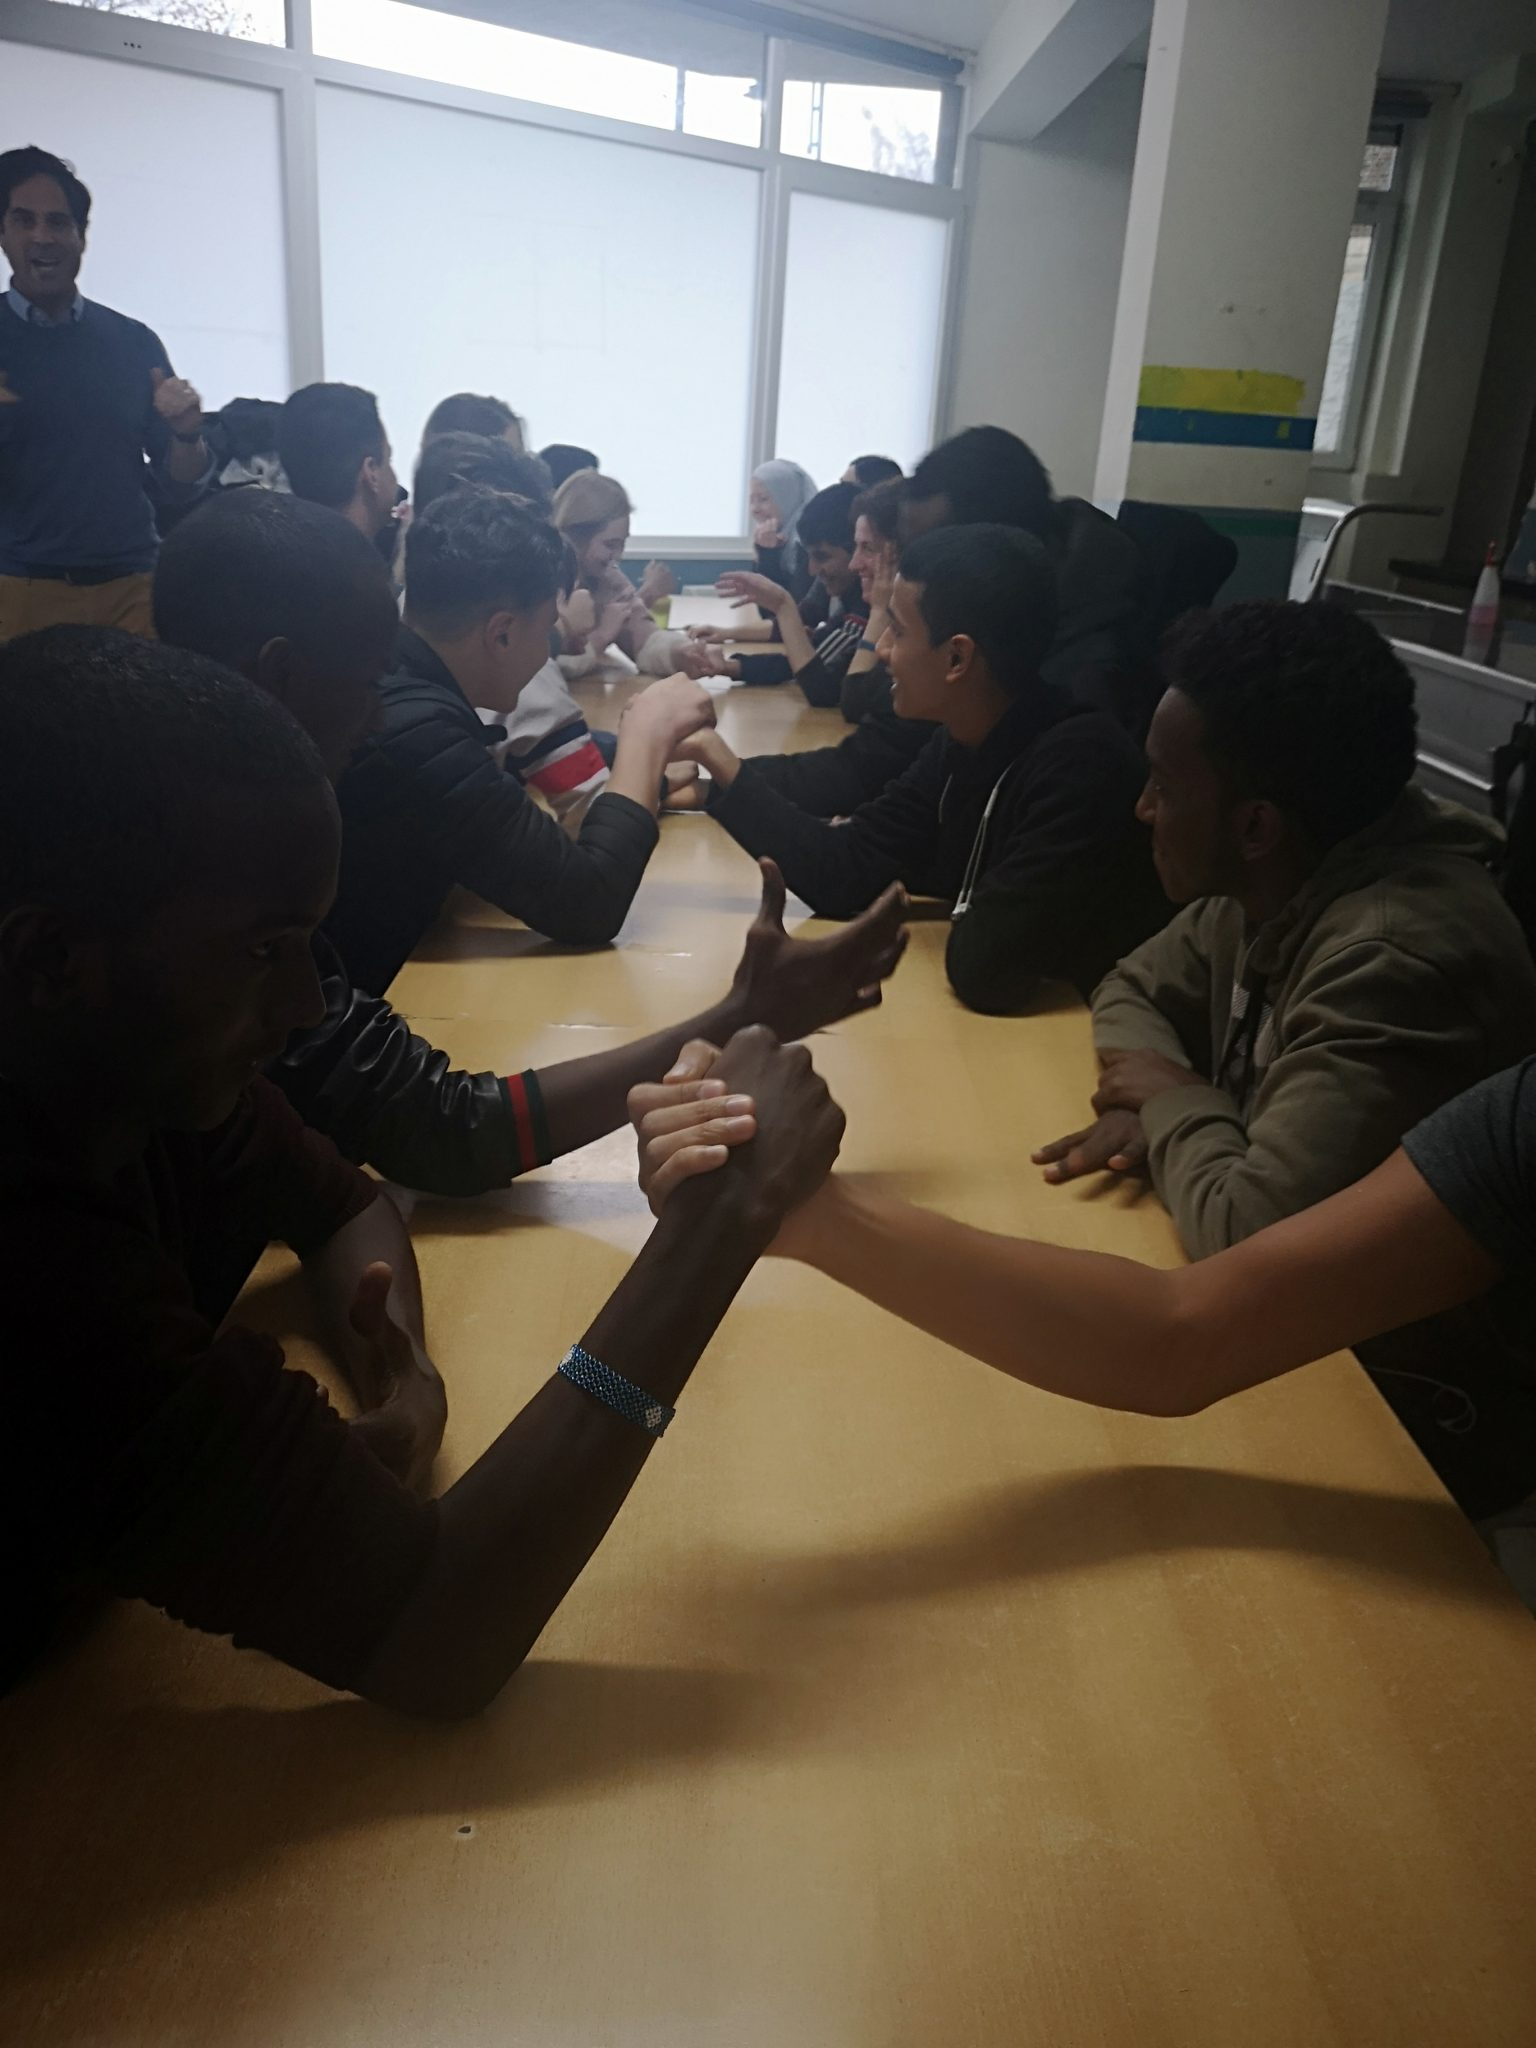 How do you share an orange? – Innovative problem-solving workshop empowers refugee youth | Brussels Express